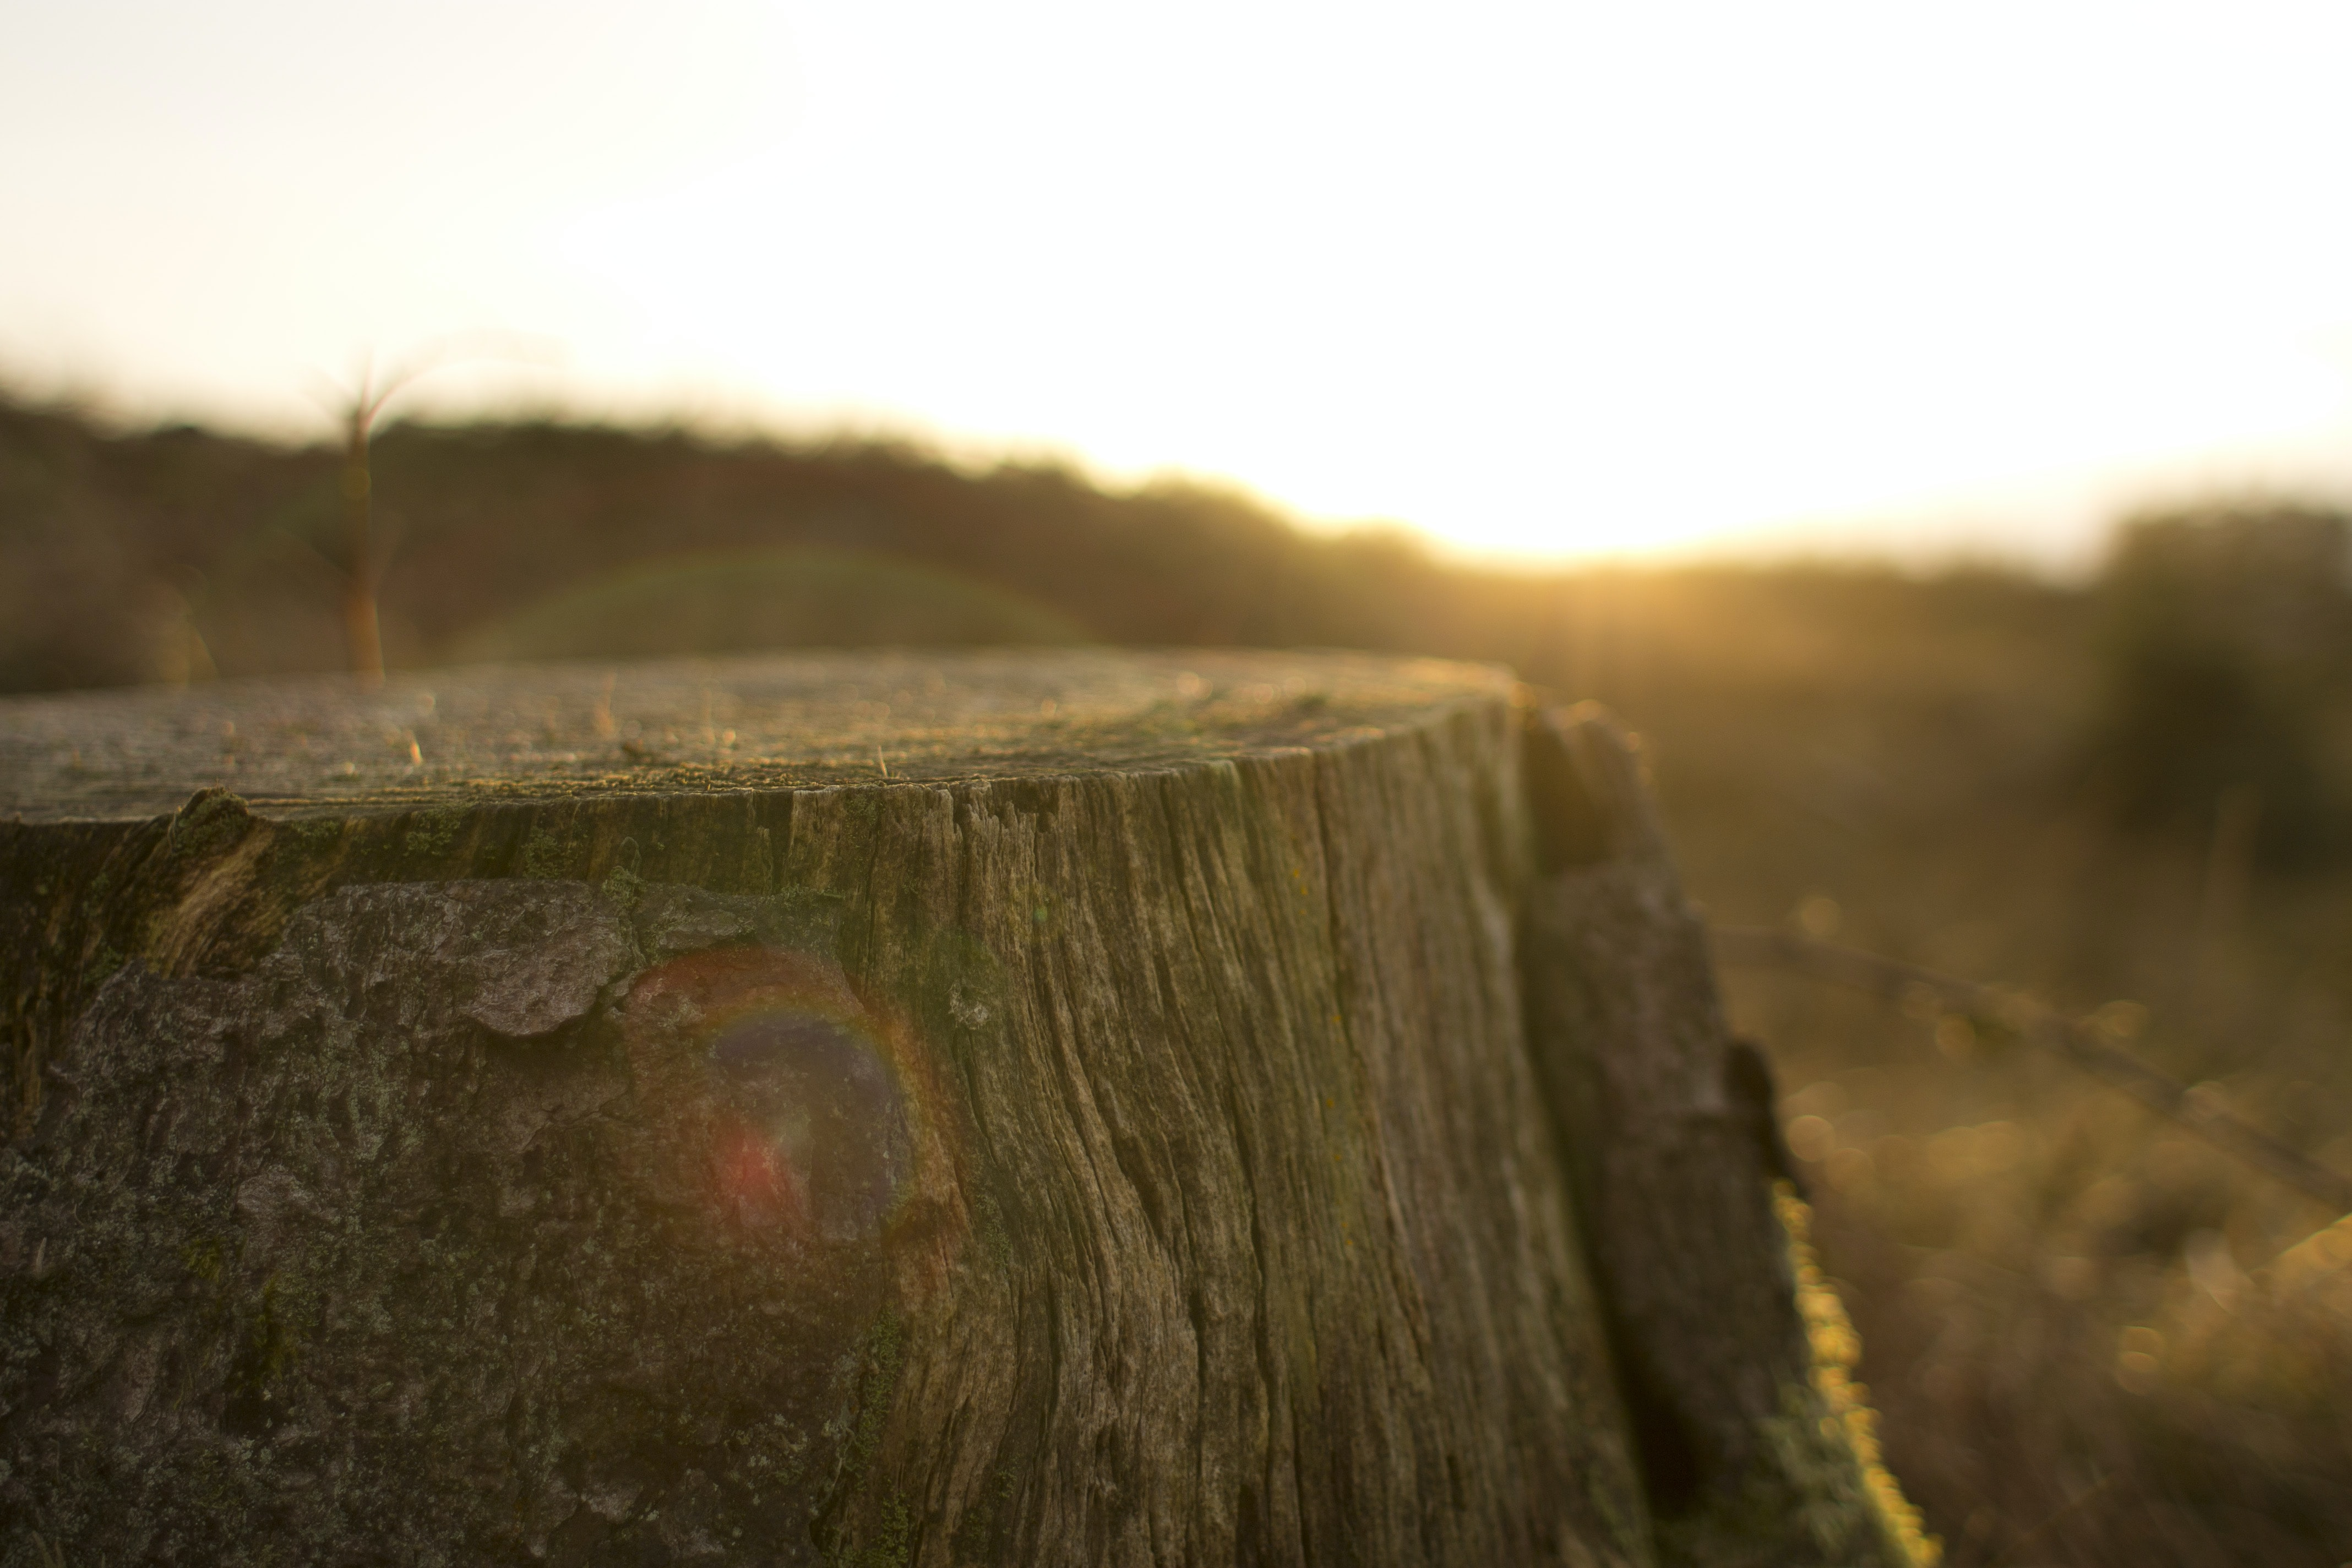 close up photography of tree trunk